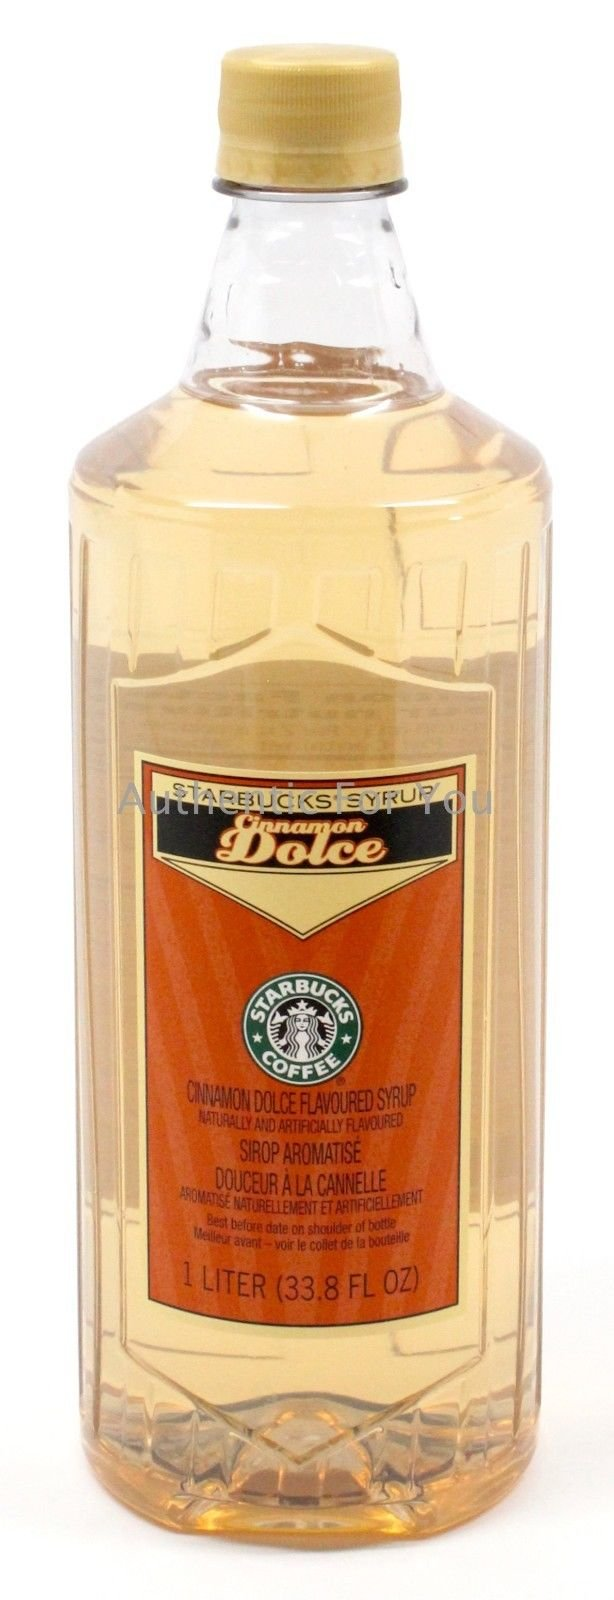 Starbucks® Cinnamon Dolce Syrup (1-L.)